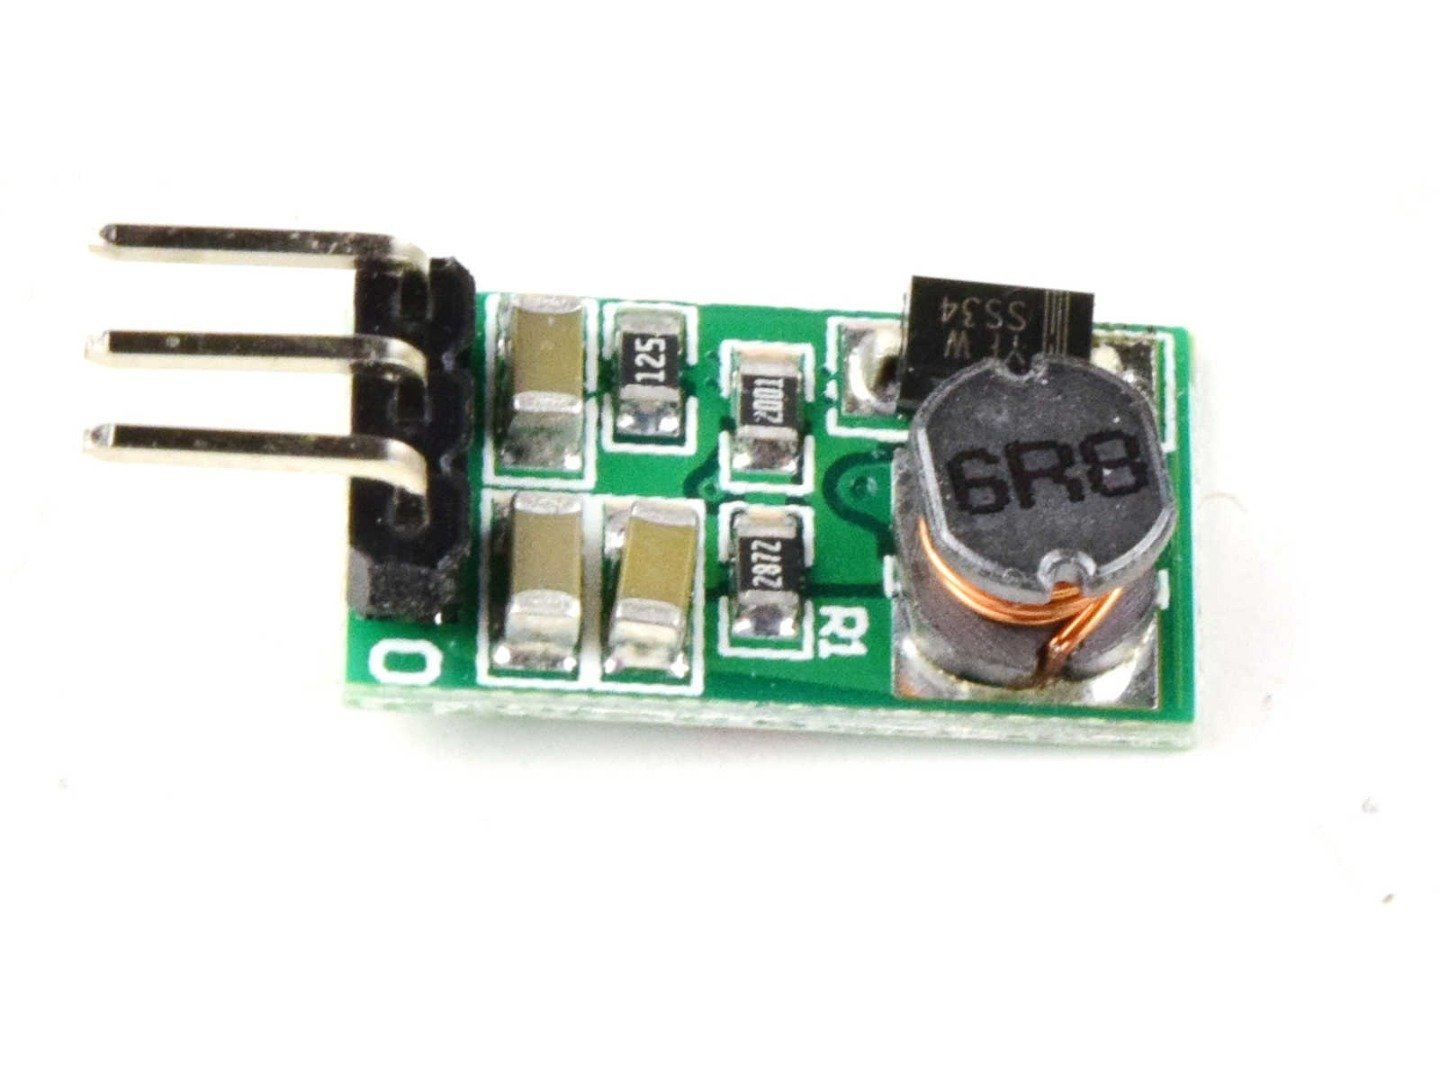 DC-DC Switching Regulator 5V 1A – TO-220 pinout – 7805 Replacement